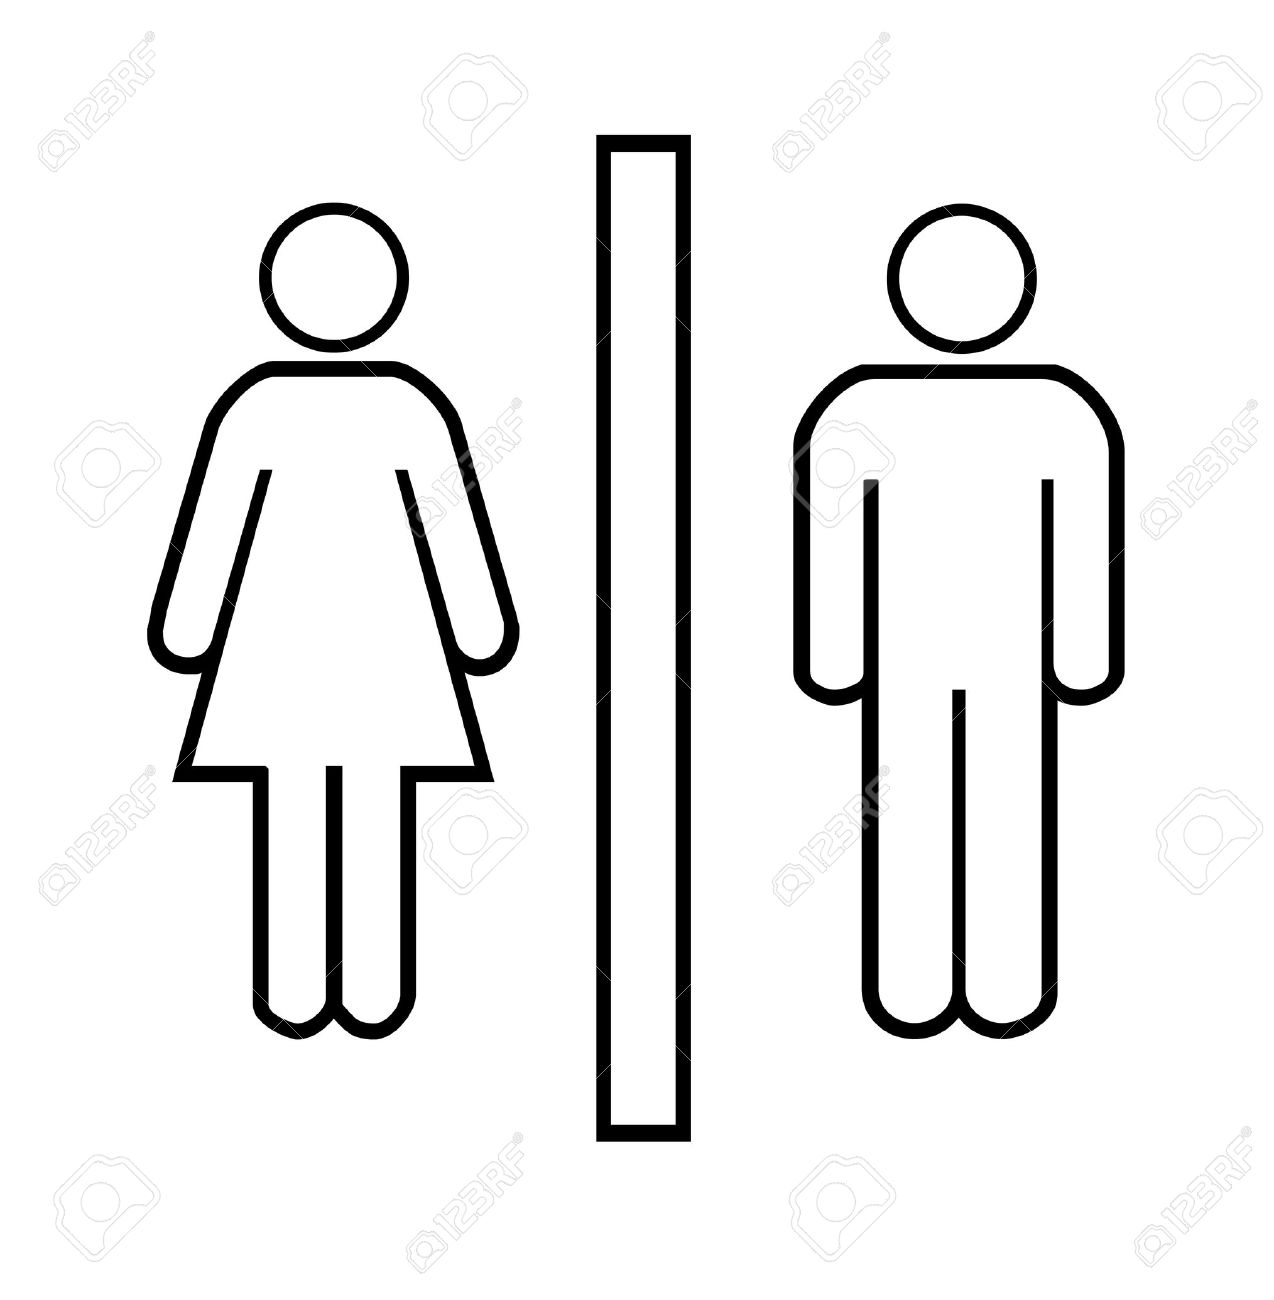 Restroom signs for men and woman over white background Stock Photo   9314495. Restroom Signs For Men And Woman Over White Background Stock Photo